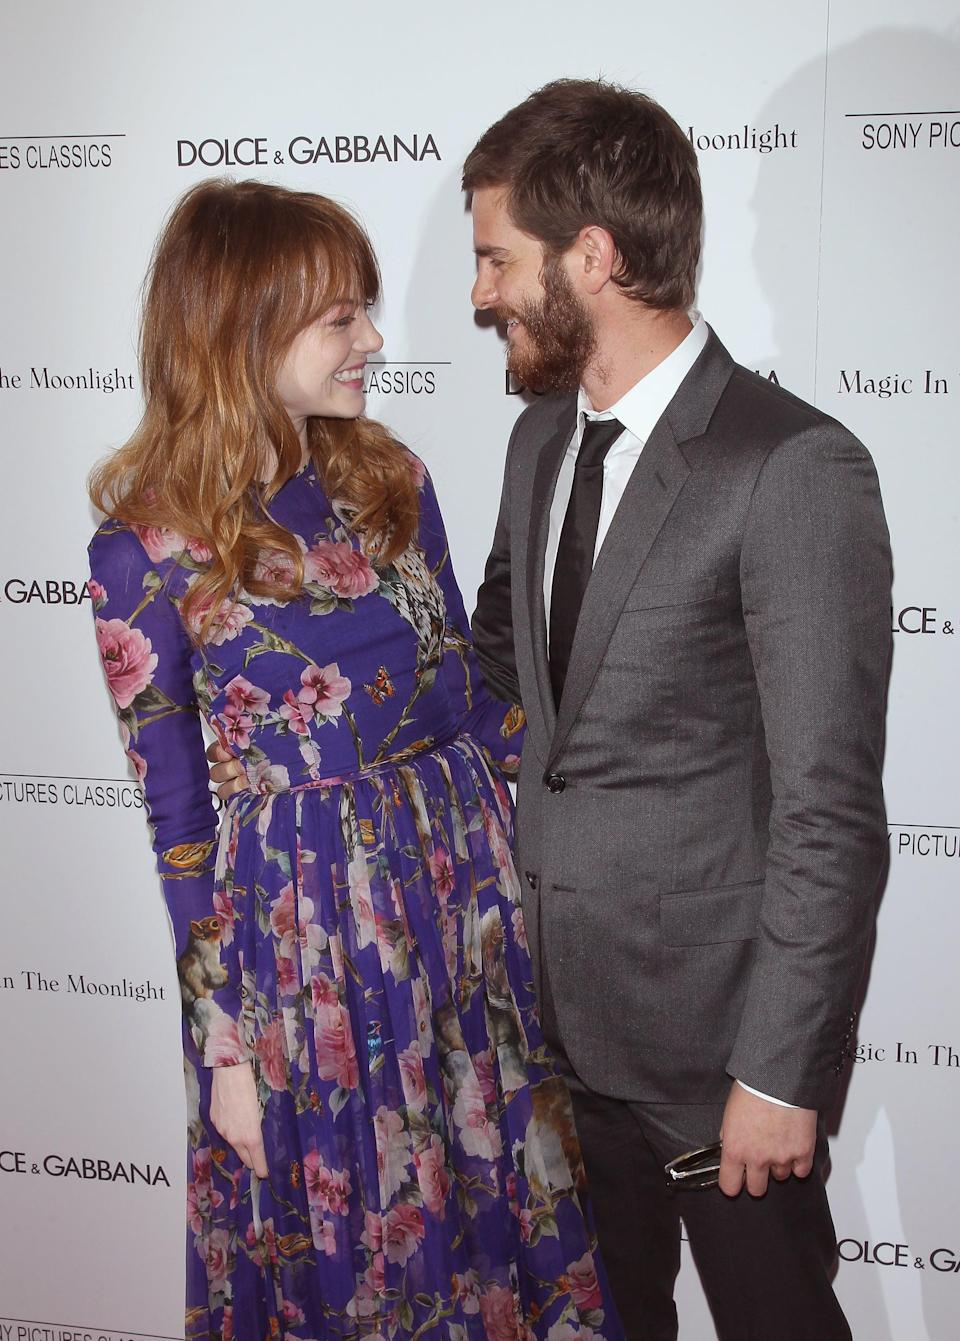 """<p><a href=""""http://www.popsugar.com/Emma-Stone"""" class=""""link rapid-noclick-resp"""" rel=""""nofollow noopener"""" target=""""_blank"""" data-ylk=""""slk:Emma"""">Emma</a> and <a href=""""http://www.popsugar.com/Andrew-Garfield"""" class=""""link rapid-noclick-resp"""" rel=""""nofollow noopener"""" target=""""_blank"""" data-ylk=""""slk:Andrew"""">Andrew</a> <a href=""""https://www.popsugar.com/celebrity/Andrew-Garfield-Emma-Stone-Cutest-Pictures-31160469"""" class=""""link rapid-noclick-resp"""" rel=""""nofollow noopener"""" target=""""_blank"""" data-ylk=""""slk:shared many cute moments"""">shared many cute moments</a> throughout their four-year relationship, and we're still bummed about their 2015 breakup.</p> <p>The pair met on the set of Marc Webb's <strong>The Amazing Spider-Man</strong>, where Andrew played Spider-Man and Emma played Gwen Stacy, and they started dating in 2011. On the filming experience, Andrew told <strong>MTV News</strong>, """"<a href=""""http://www.mtv.com/news/1687160/spider-man-andrew-garfield-emma-stone/"""" class=""""link rapid-noclick-resp"""" rel=""""nofollow noopener"""" target=""""_blank"""" data-ylk=""""slk:We got on really well as people"""">We got on really well as people</a>, in between [takes]. That was the fun stuff: In between, we'd just mess around, and I felt, 'Ah, this is different.'"""" Emma echoed his sentiment, telling <strong>Teen Vogue</strong><strong>, </strong>""""Meeting Andrew, and <a href=""""http://www.teenvogue.com/gallery/emma-stone-andrew-garfield-teen-vogue-photos#2"""" class=""""link rapid-noclick-resp"""" rel=""""nofollow noopener"""" target=""""_blank"""" data-ylk=""""slk:working with Andrew ... was one of the greatest experiences"""">working with Andrew ... was one of the greatest experiences</a> I've ever had.""""<br><br>The two continued to date, giving the world <a href=""""https://www.popsugar.com/celebrity/Emma-Stone-Andrew-Garfield-Relationship-Details-43048344"""" class=""""link rapid-noclick-resp"""" rel=""""nofollow noopener"""" target=""""_blank"""" data-ylk=""""slk:small glimpses into their relationship"""">small glimpses into their relationship</a> with red carpet photo-o"""